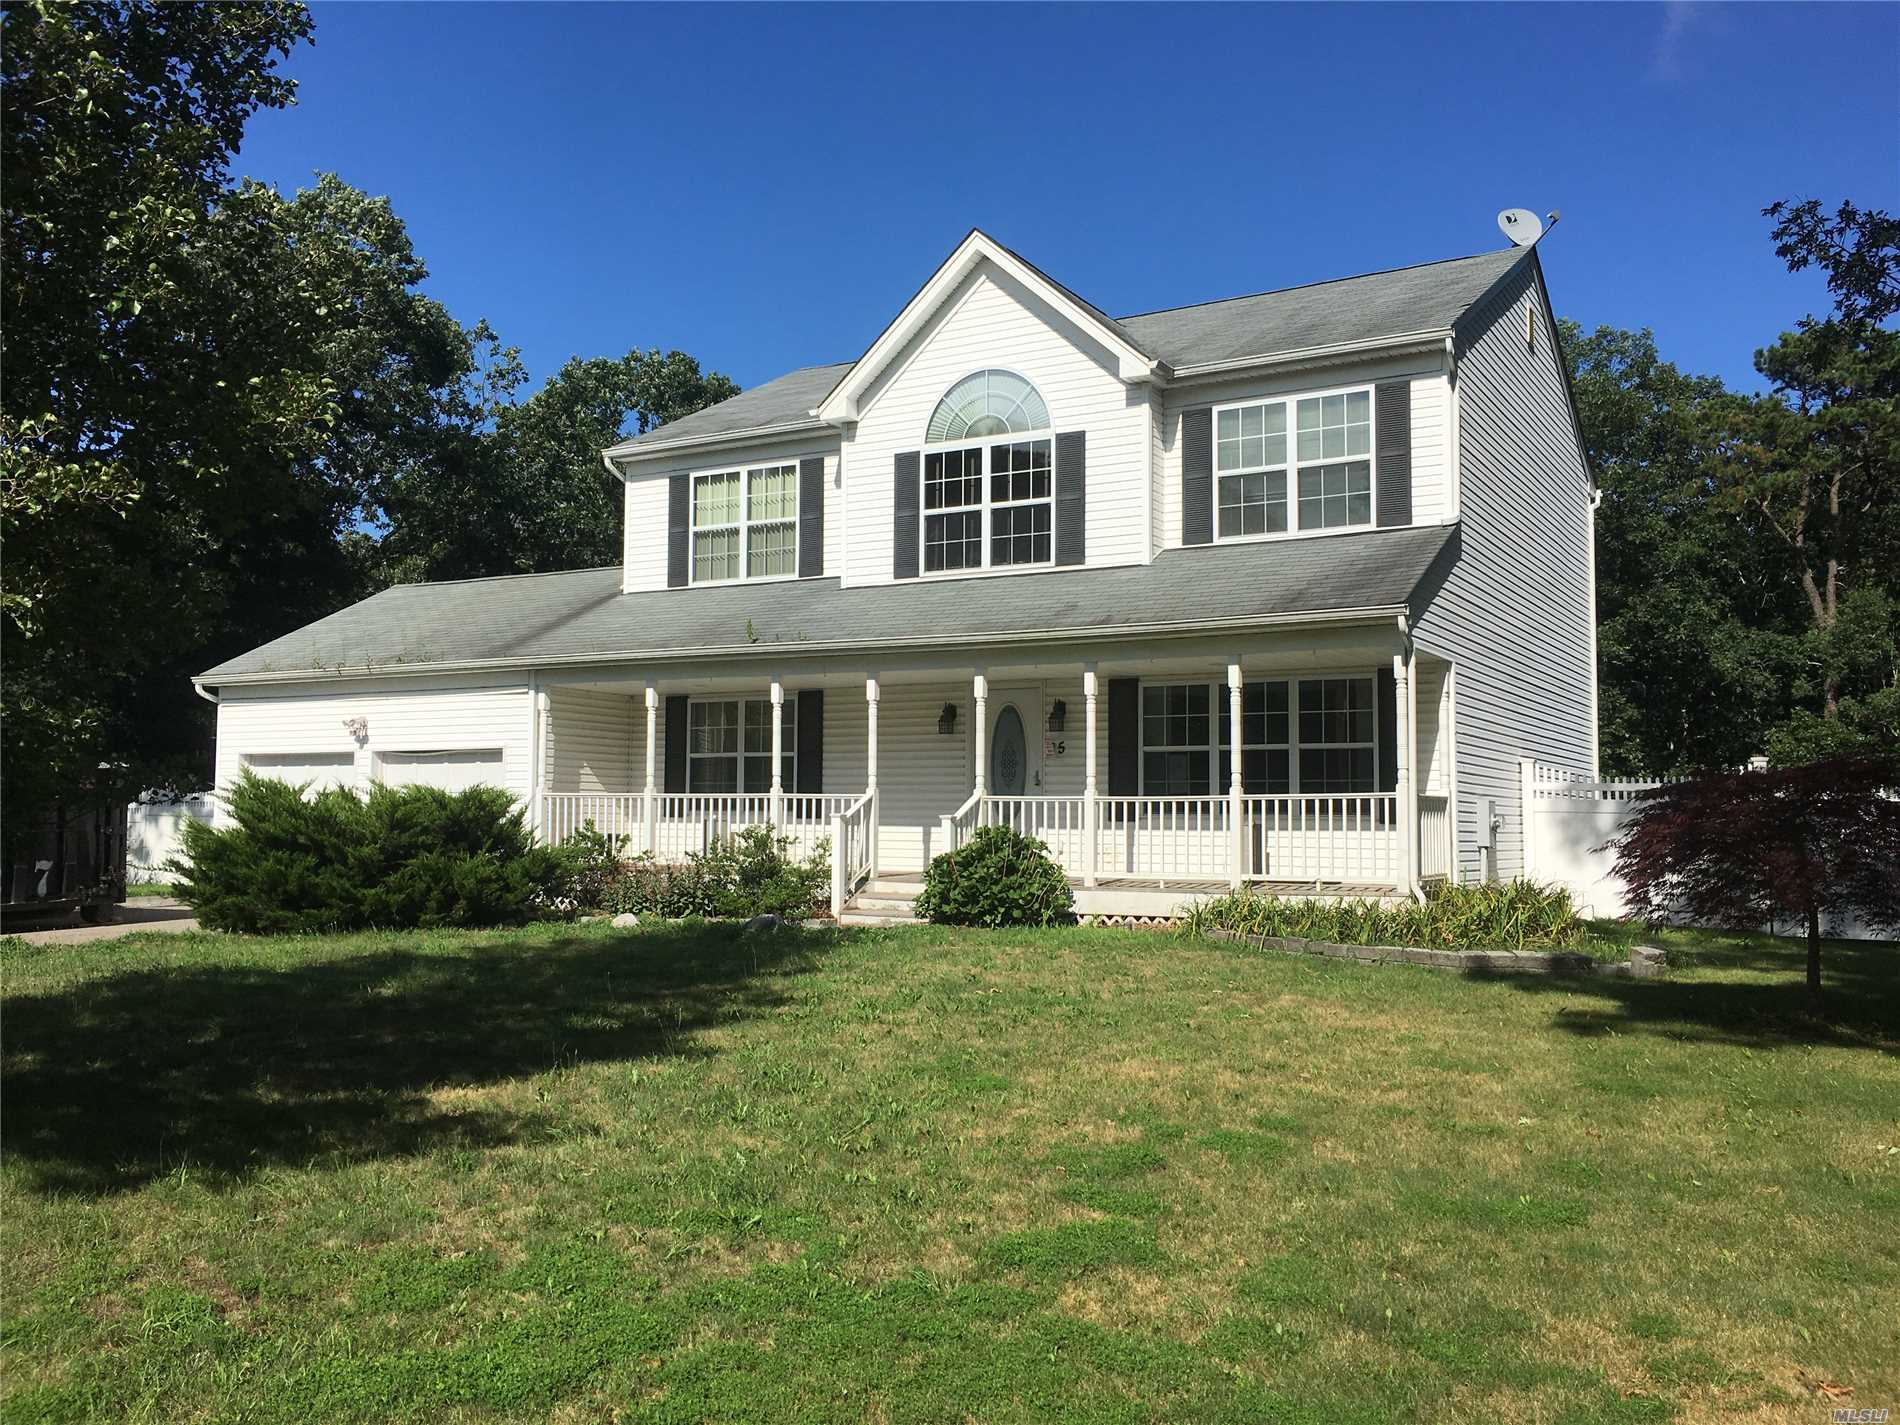 Perfect Location, On Cul D Sac, 20 Plus Homes On Block , Flat Property Backed Up To Unbuildable Land , Fenced Yard, Vaulted Ceilings In Mst Bed And Spare Bd Rm, House Has All On Your Check List 1/2 Acre Plus, 4 Bd, 2 1/2 Bath, 2 Car Garage, Full Basement, , Central A/C , Nice Subdivision, Fresh Paint New Carpets